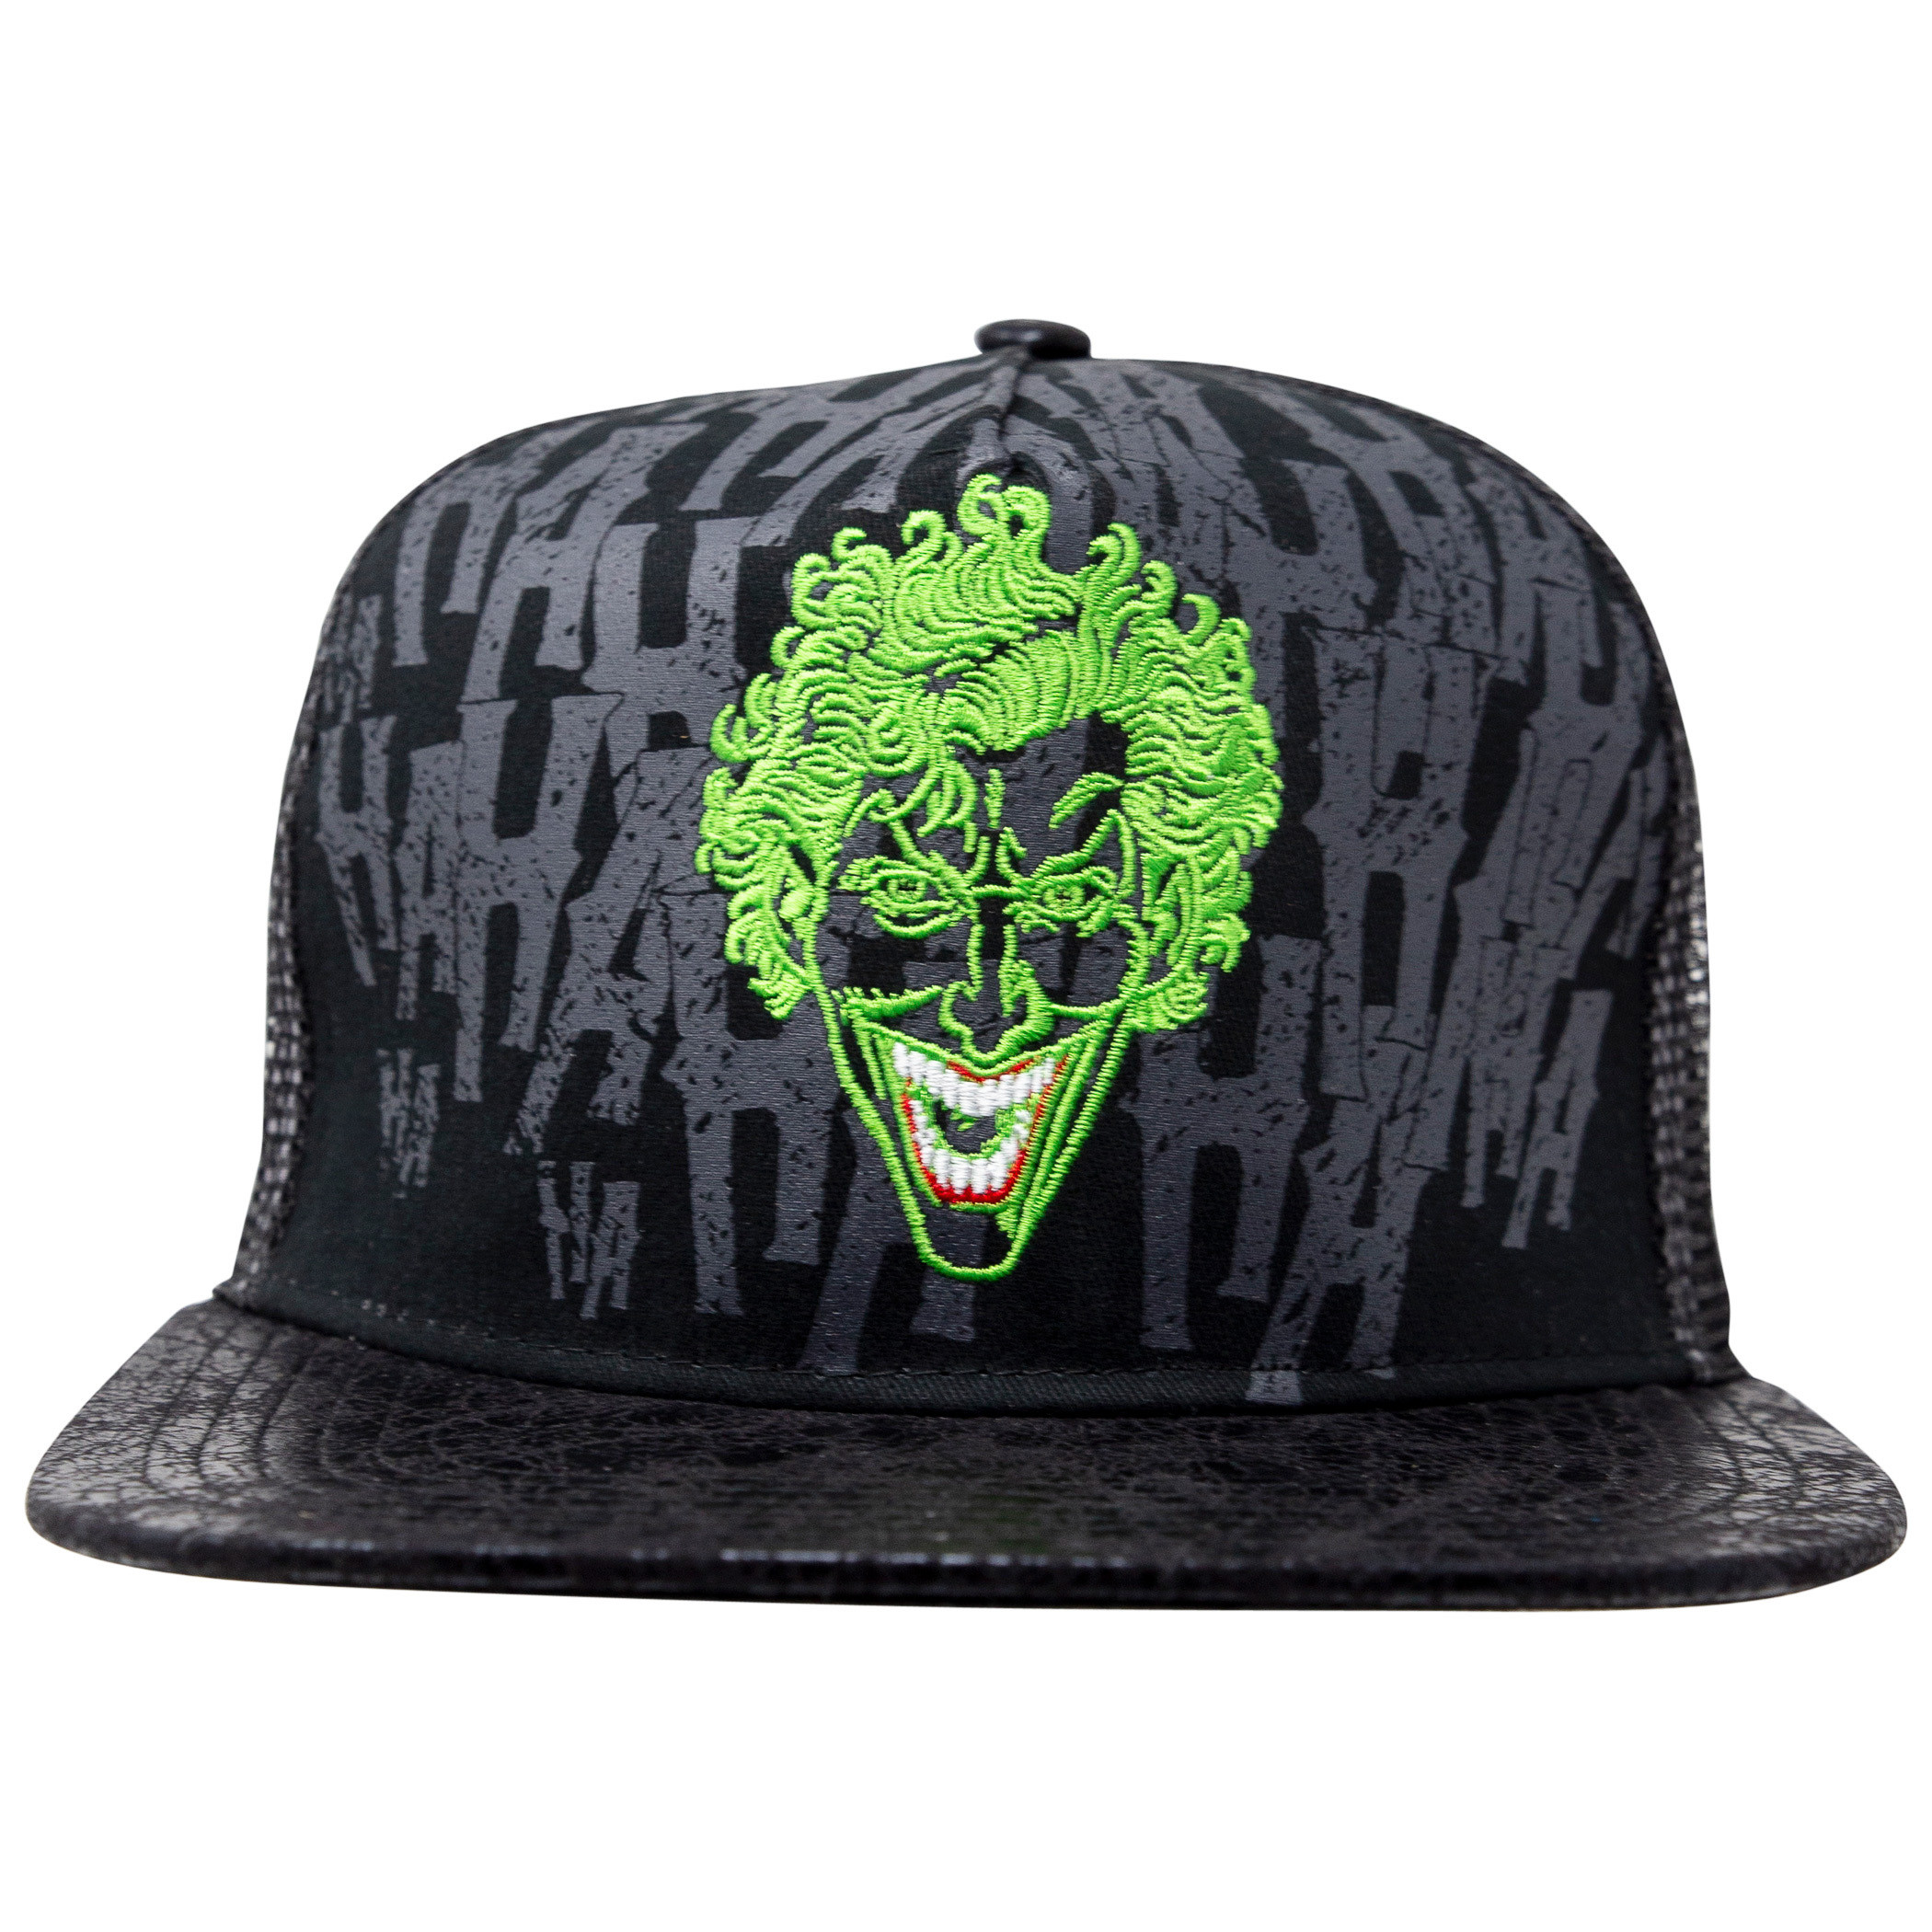 The Joker DC Comics Flat Bill Adjustable Black Snapback Hat